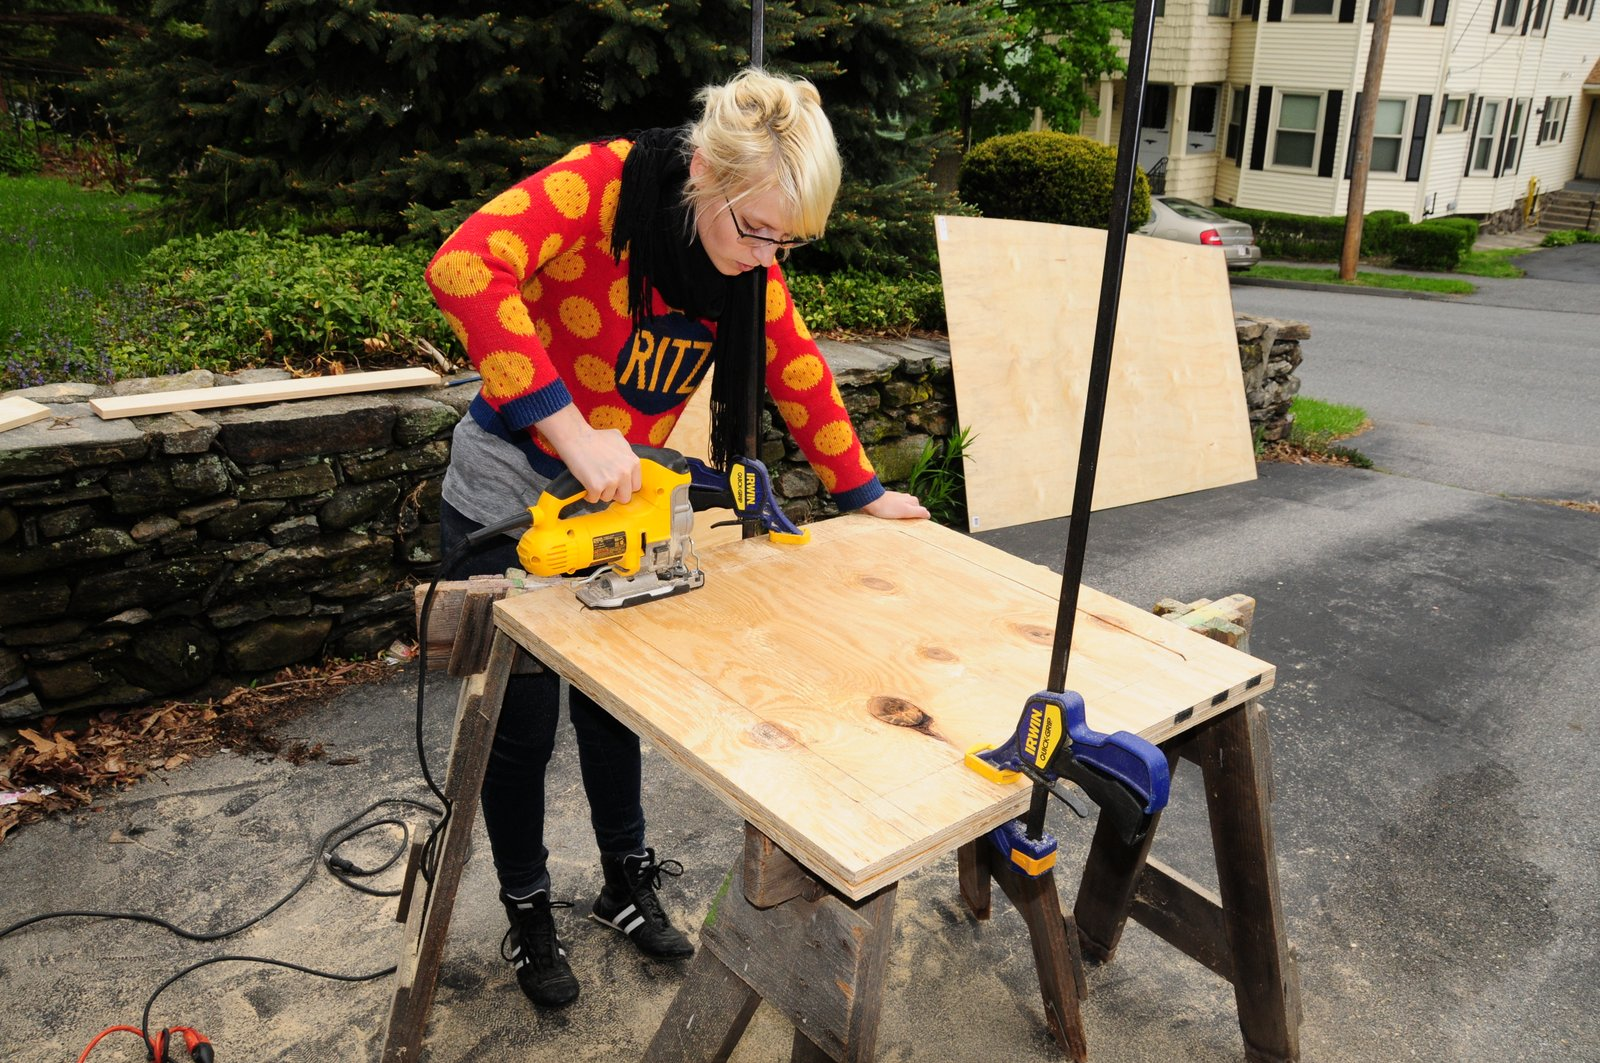 Here I'm using the Dewalt Jig Saw to cut out a shape with rounded corners.